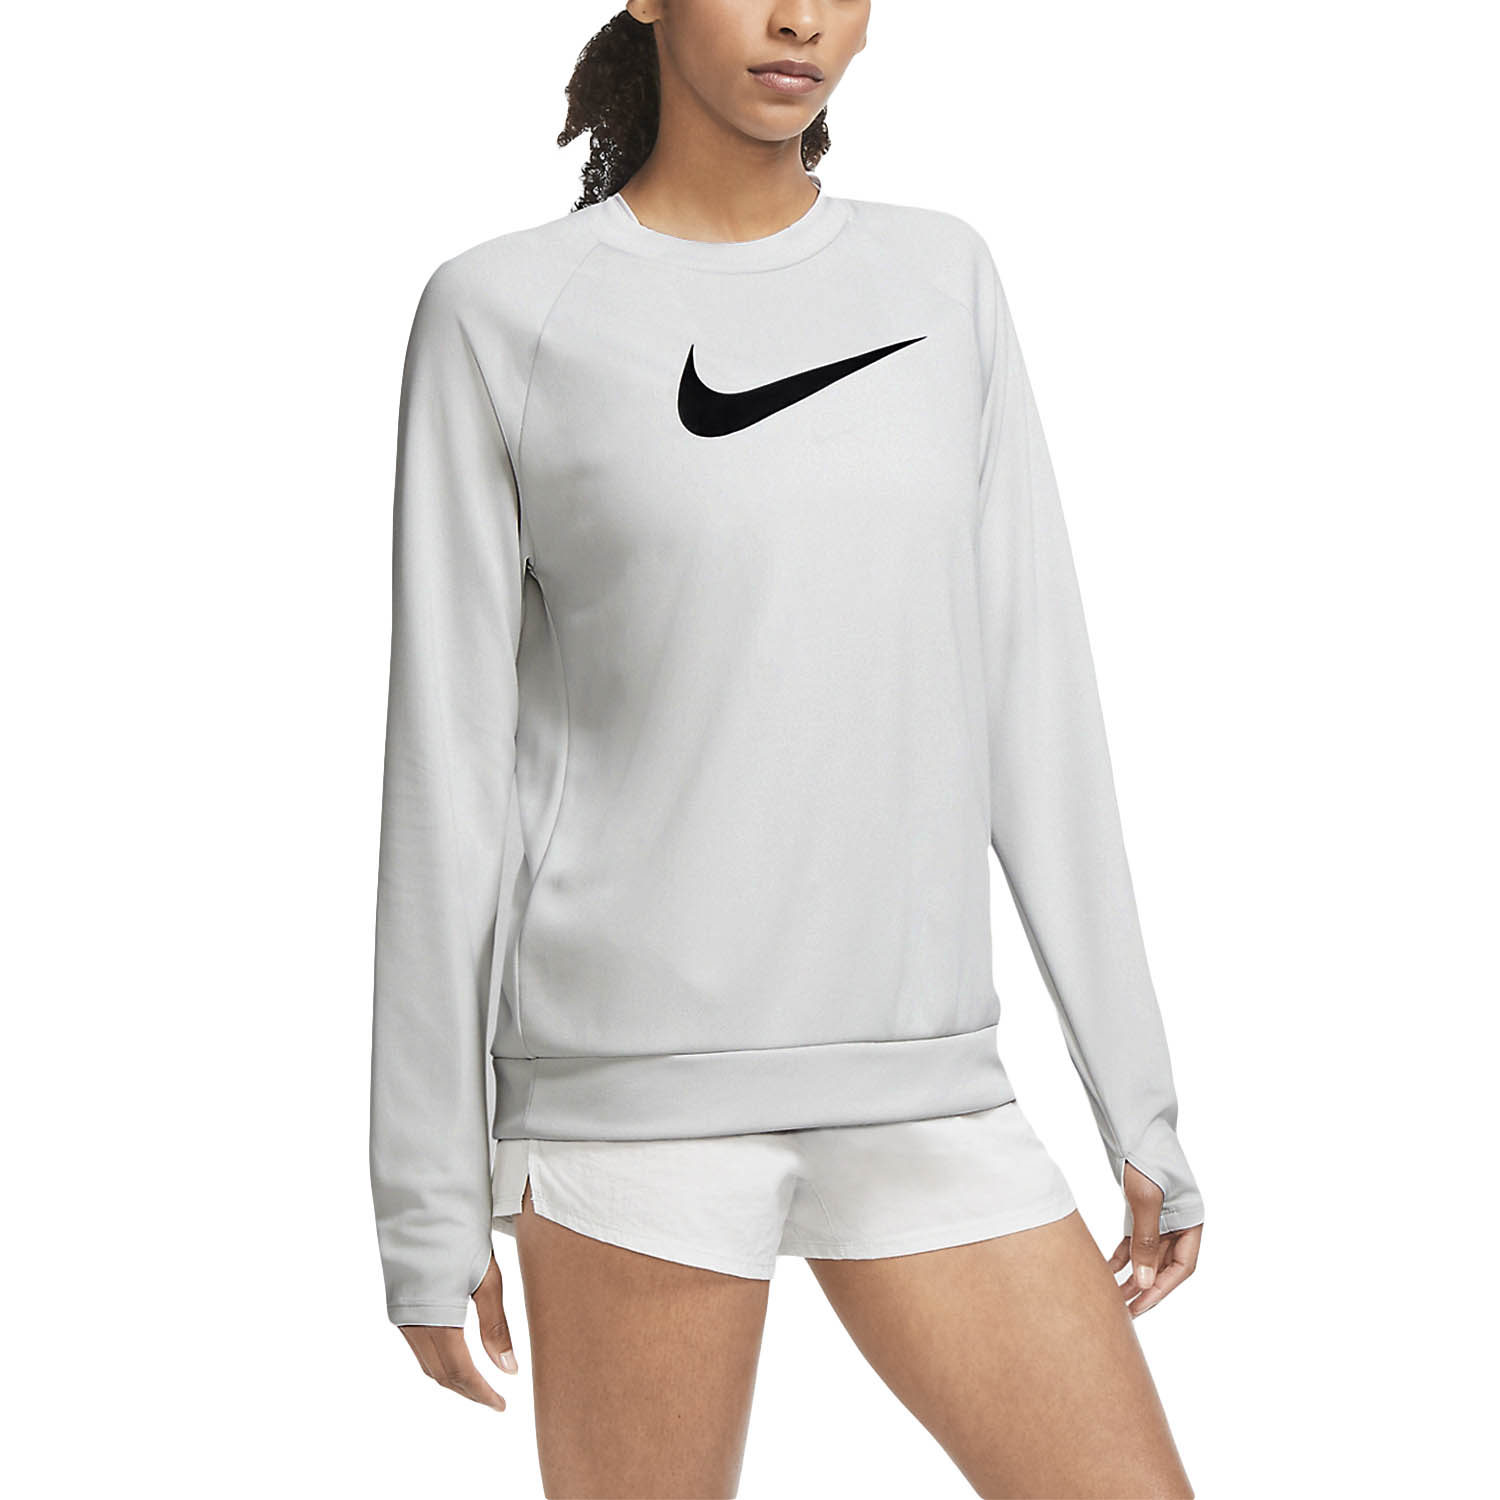 Nike Swoosh Run Crew Shirt - Gray Fog/Black